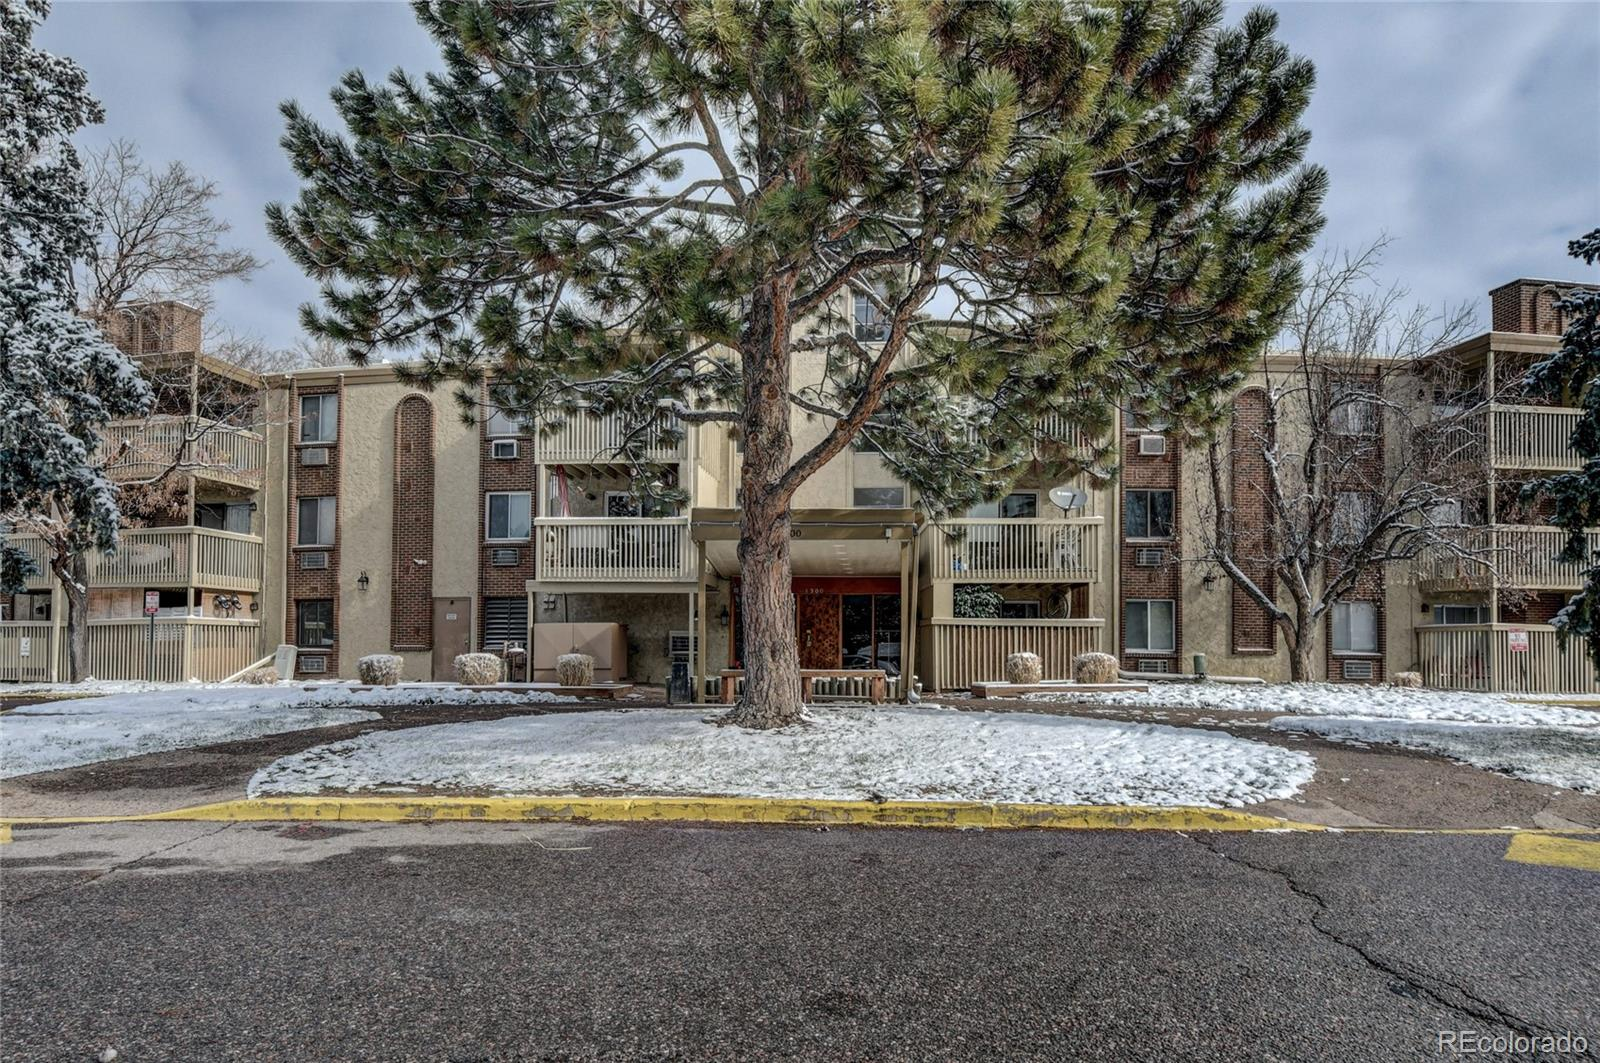 LOCATION! LOCATION! LOCATION! Cherry Creek Schools! Perfect for owner occupancy or investment. Updated Bathroom, Kitchen with nice ceramic backsplash and stainless steel appliances. Nice flooring throughout. Very clean and move-in ready unit on the second floor! HOA covers heat, water, trash, clubhouse, 2 pools, and 24 hours security. Don't miss your opportunity to own your own home in the Denver market! Centrally located, I-25, I-225. In close proximity to Downtown and DTC, hospitals, shopping, food, and entertainment.